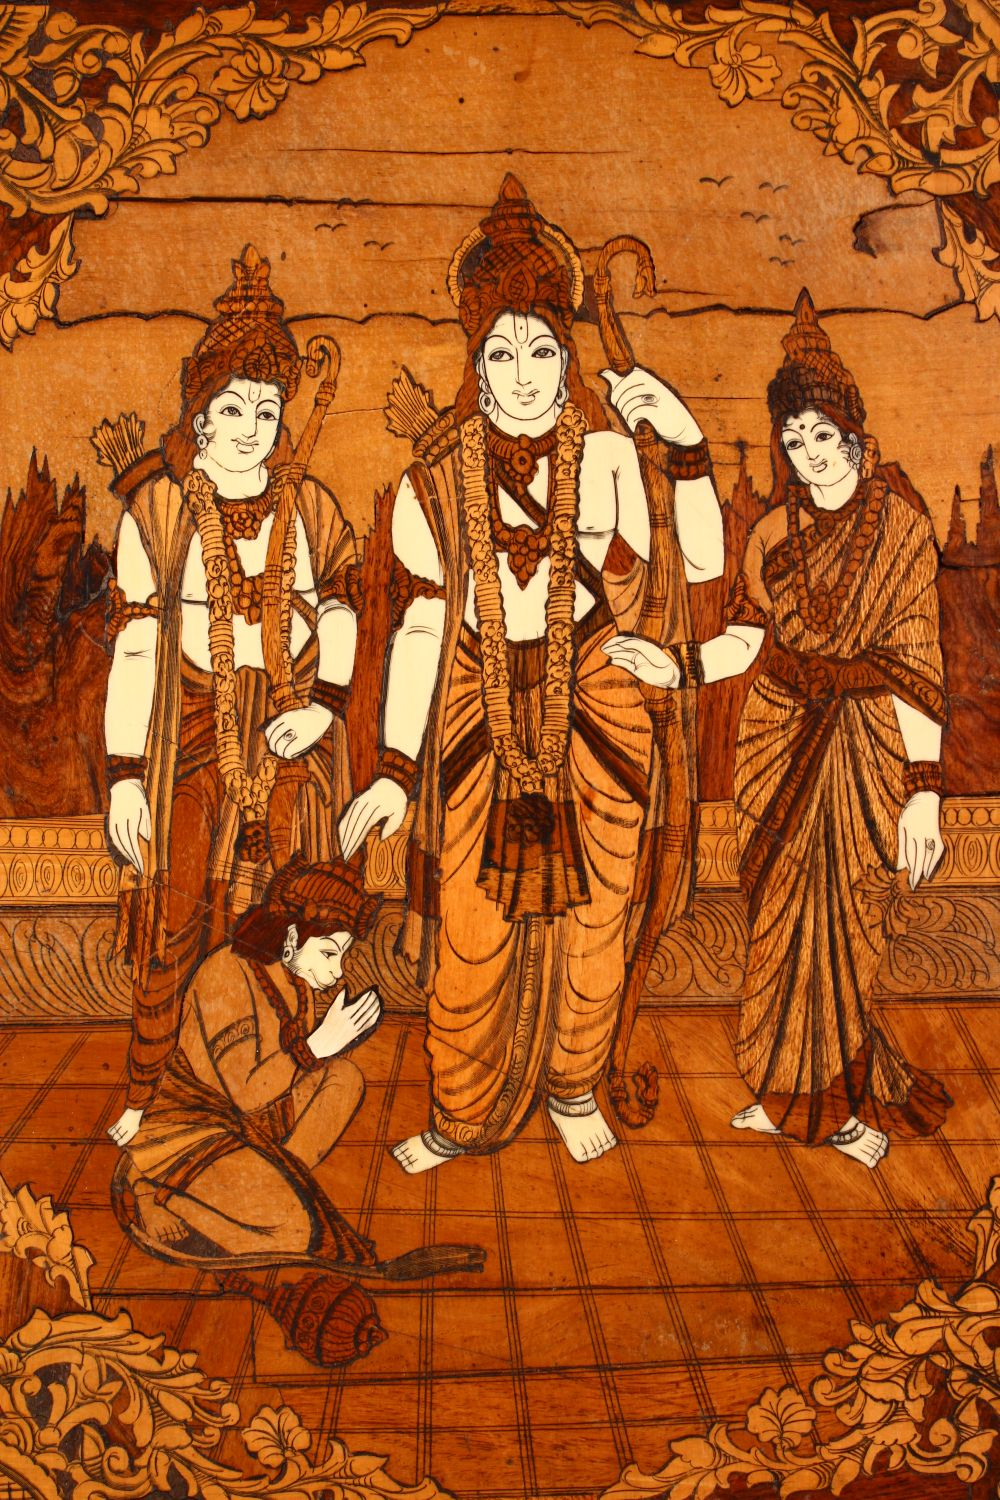 AN INDIAN INLAID WOODEN PANEL, inlaid with exotic woods and bone, depicting figures, 65cm x 55cm. - Image 2 of 5